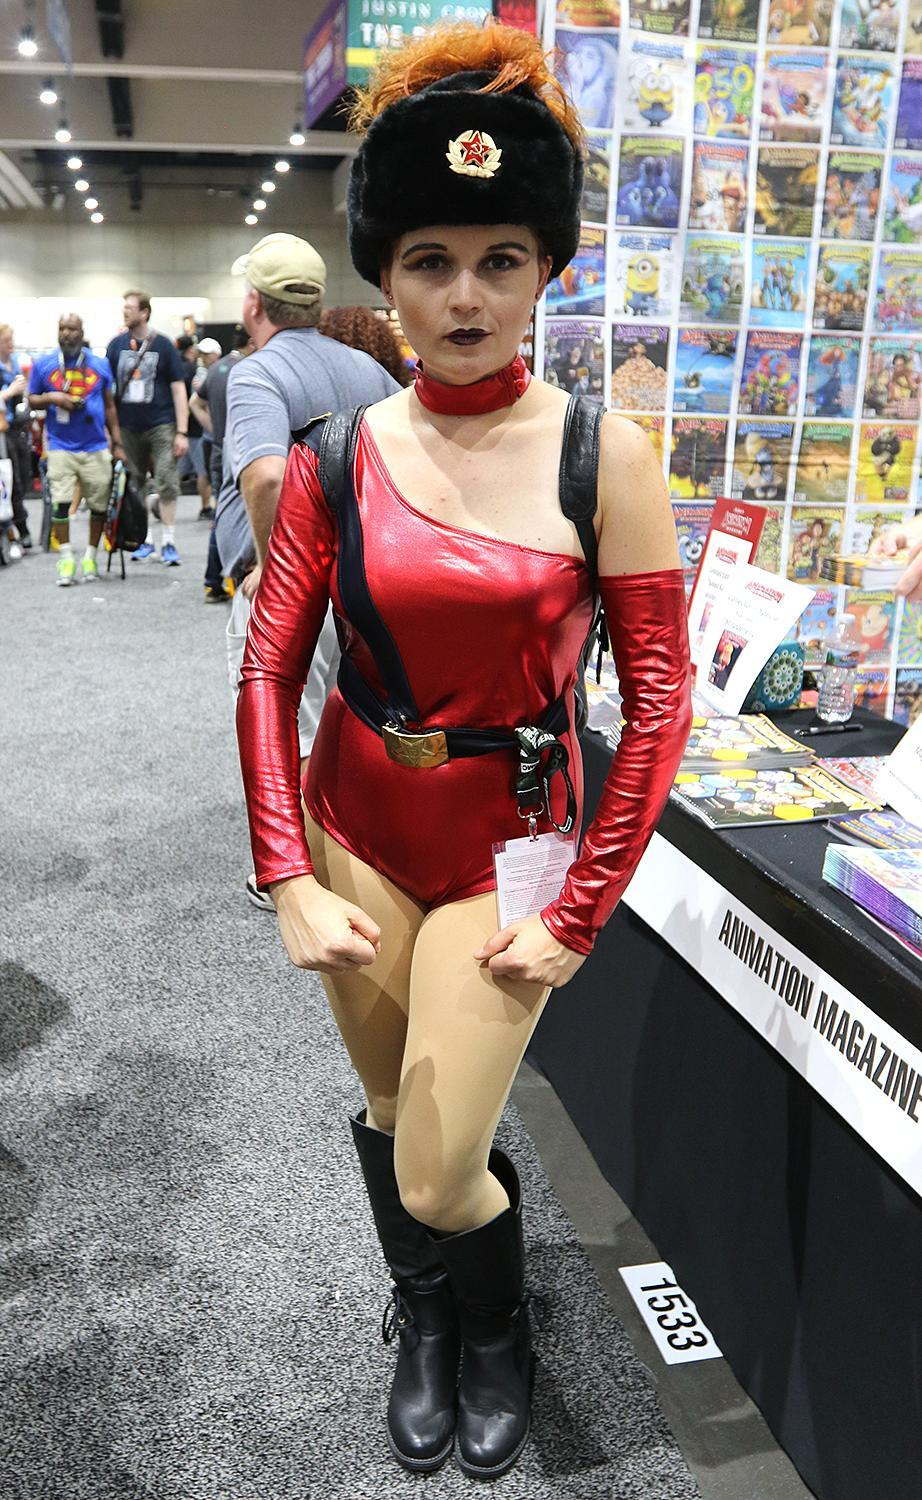 <p>Cosplayer dressed as Zoya the Destroya from <i>GLOW</i> at Comic-Con International on July 21, 2018, in San Diego. (Photo: Angela Kim/Yahoo Entertainment) </p>